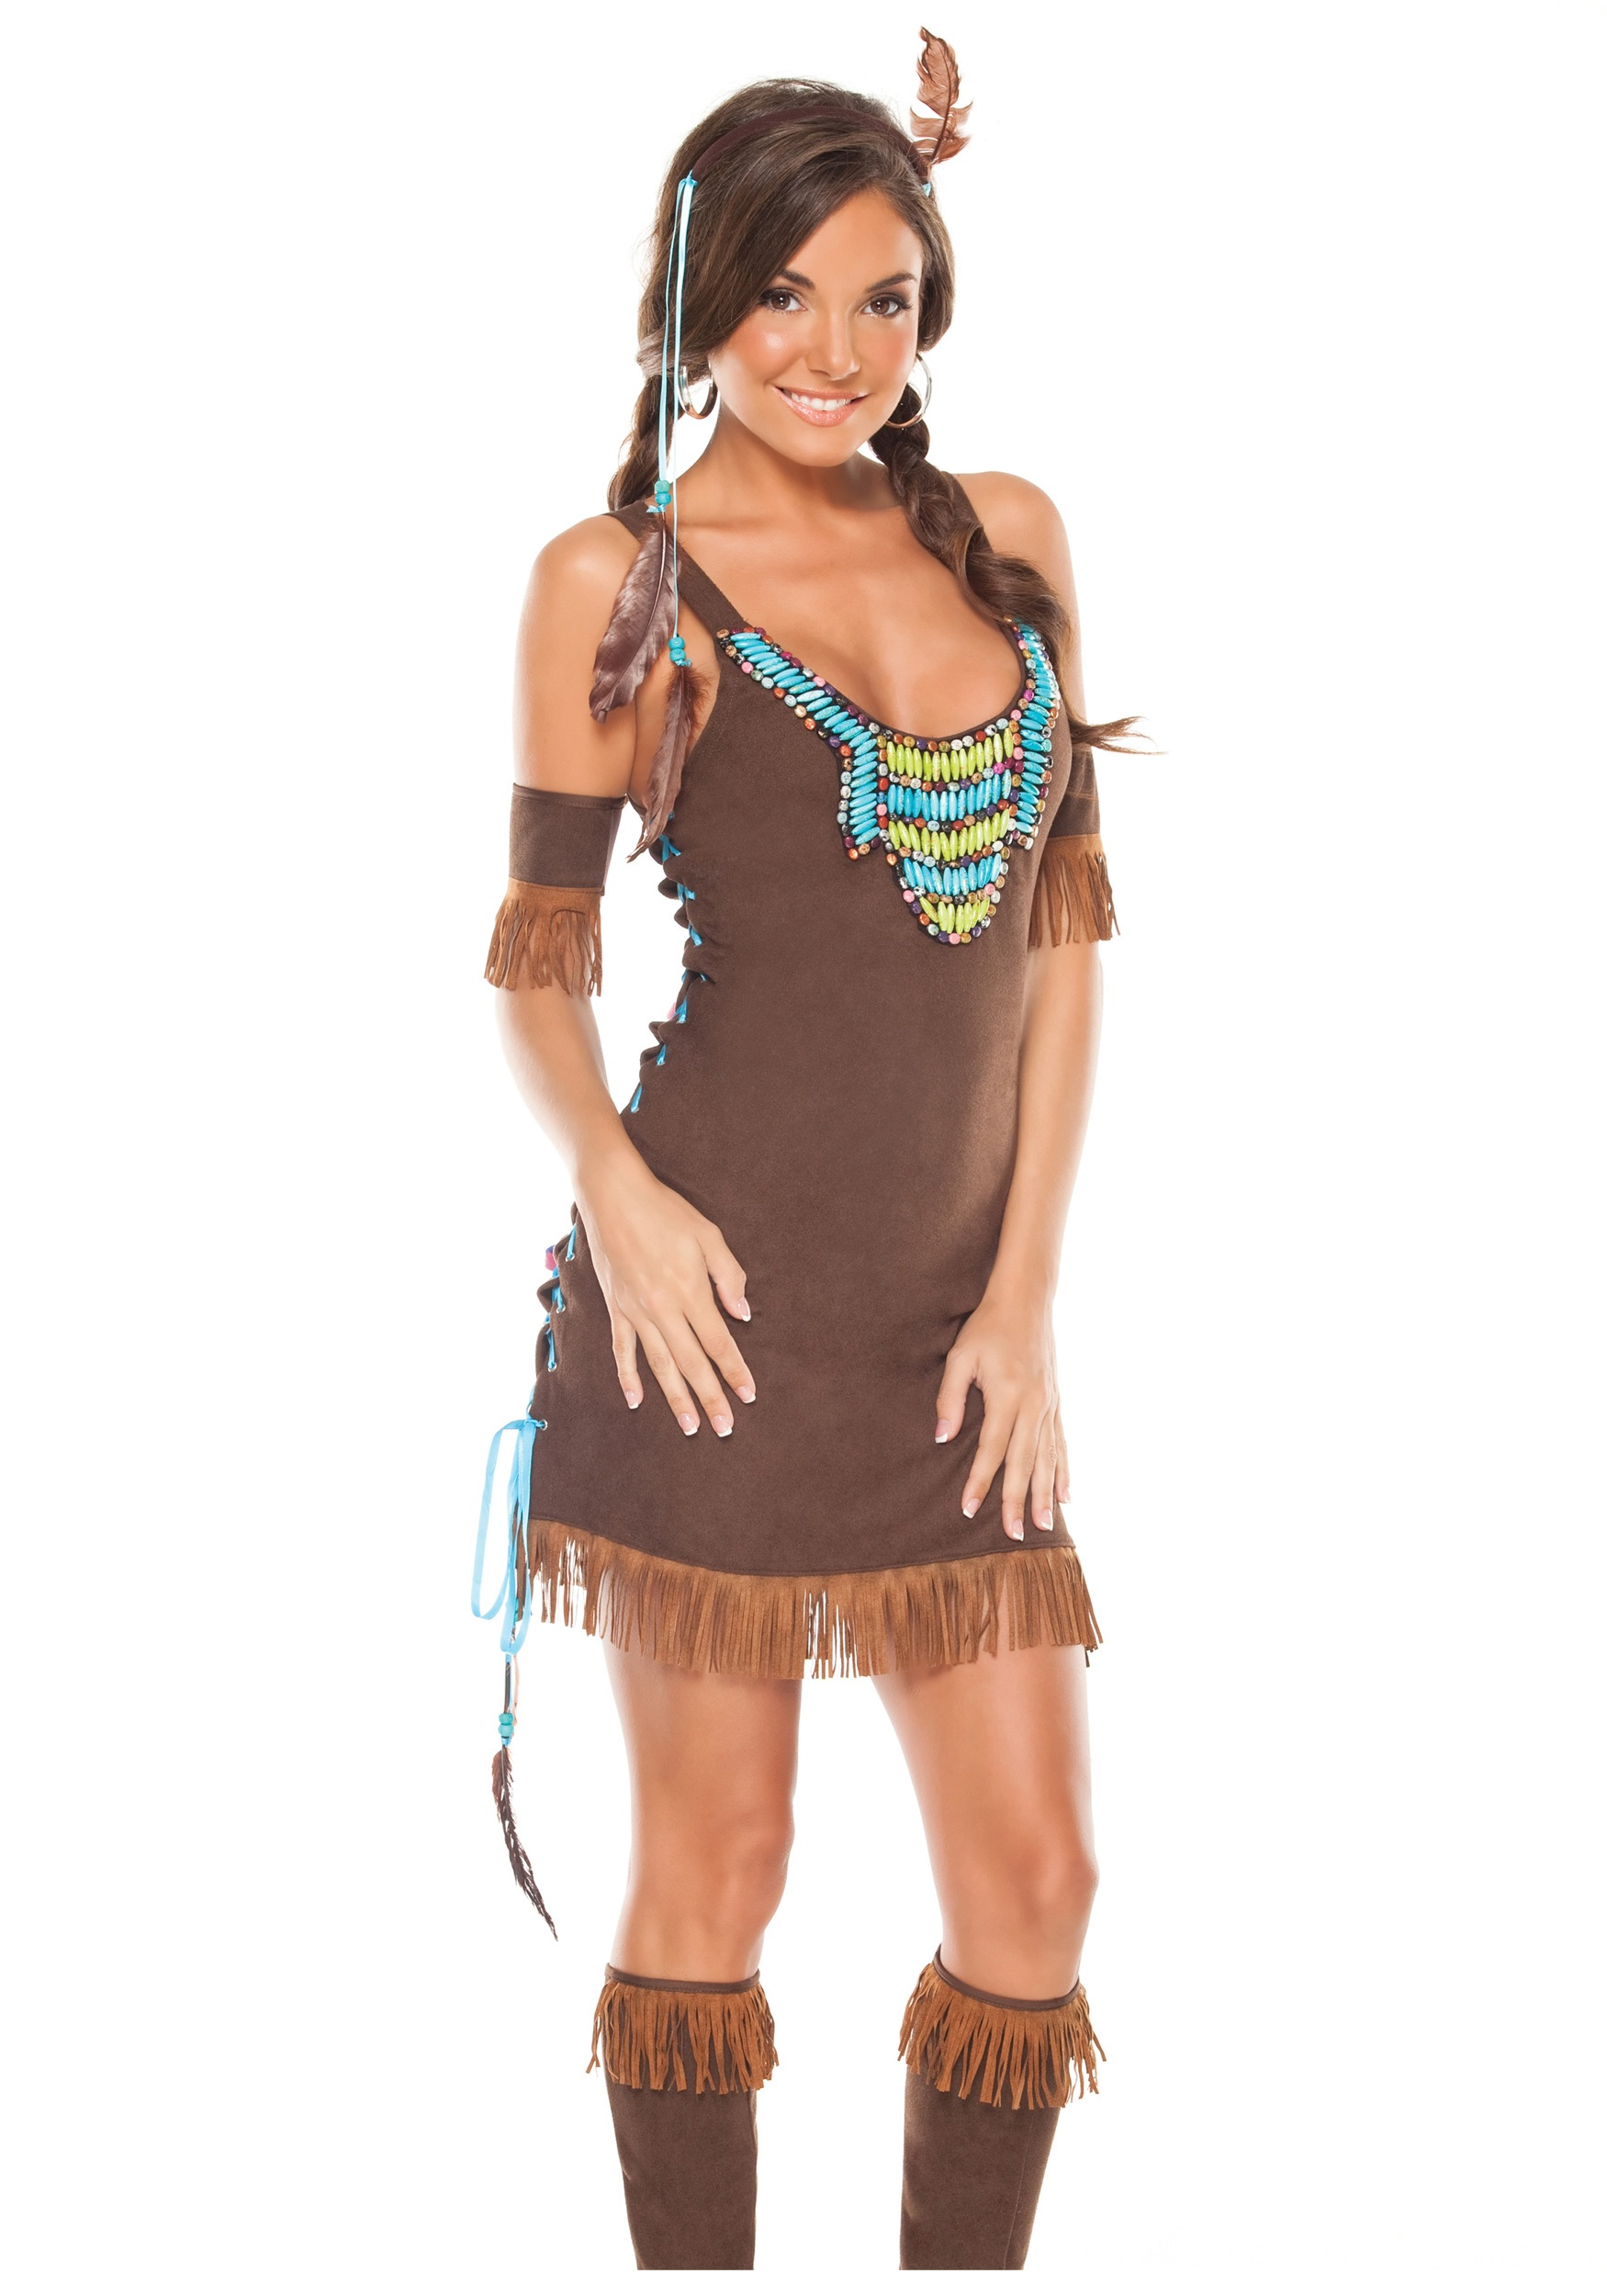 Sexy Temptress Indian Costume  sc 1 st  Halloween Costume Ideas & Sexy Temptress Indian Costume - Sexy Native American Costumes for Women